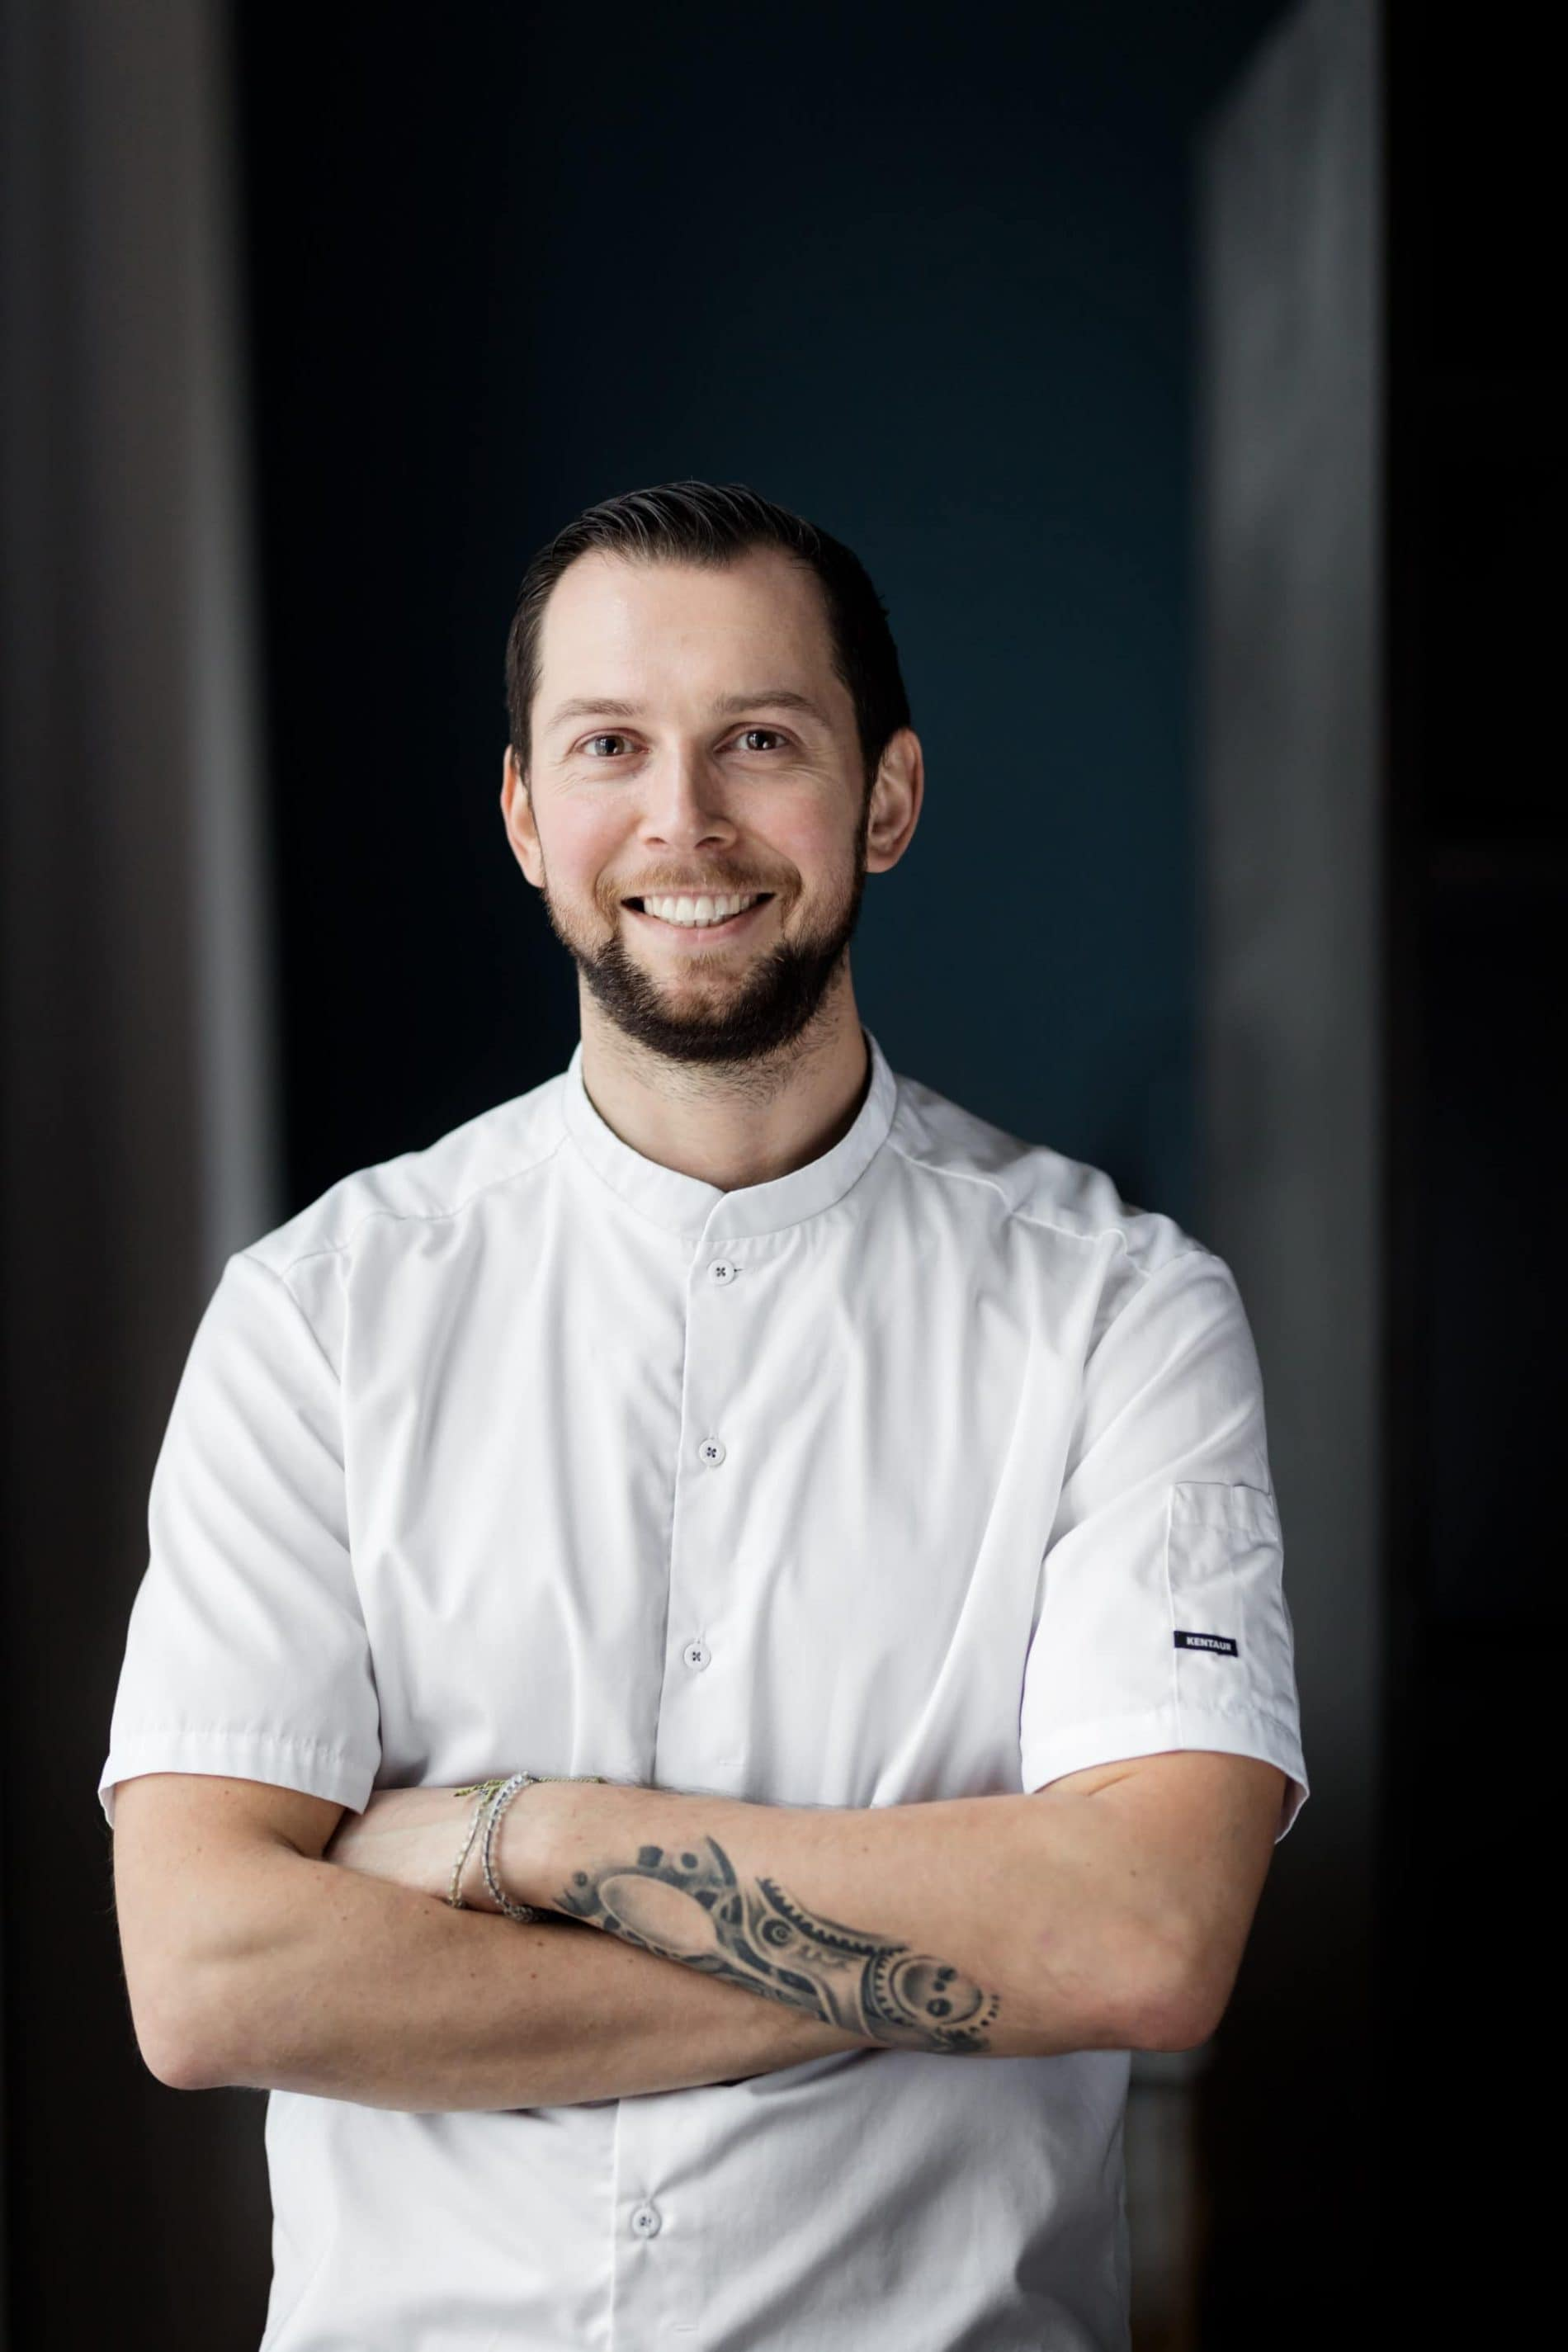 Cookbook CHEFS - OUR STORY with Patryk Stafin